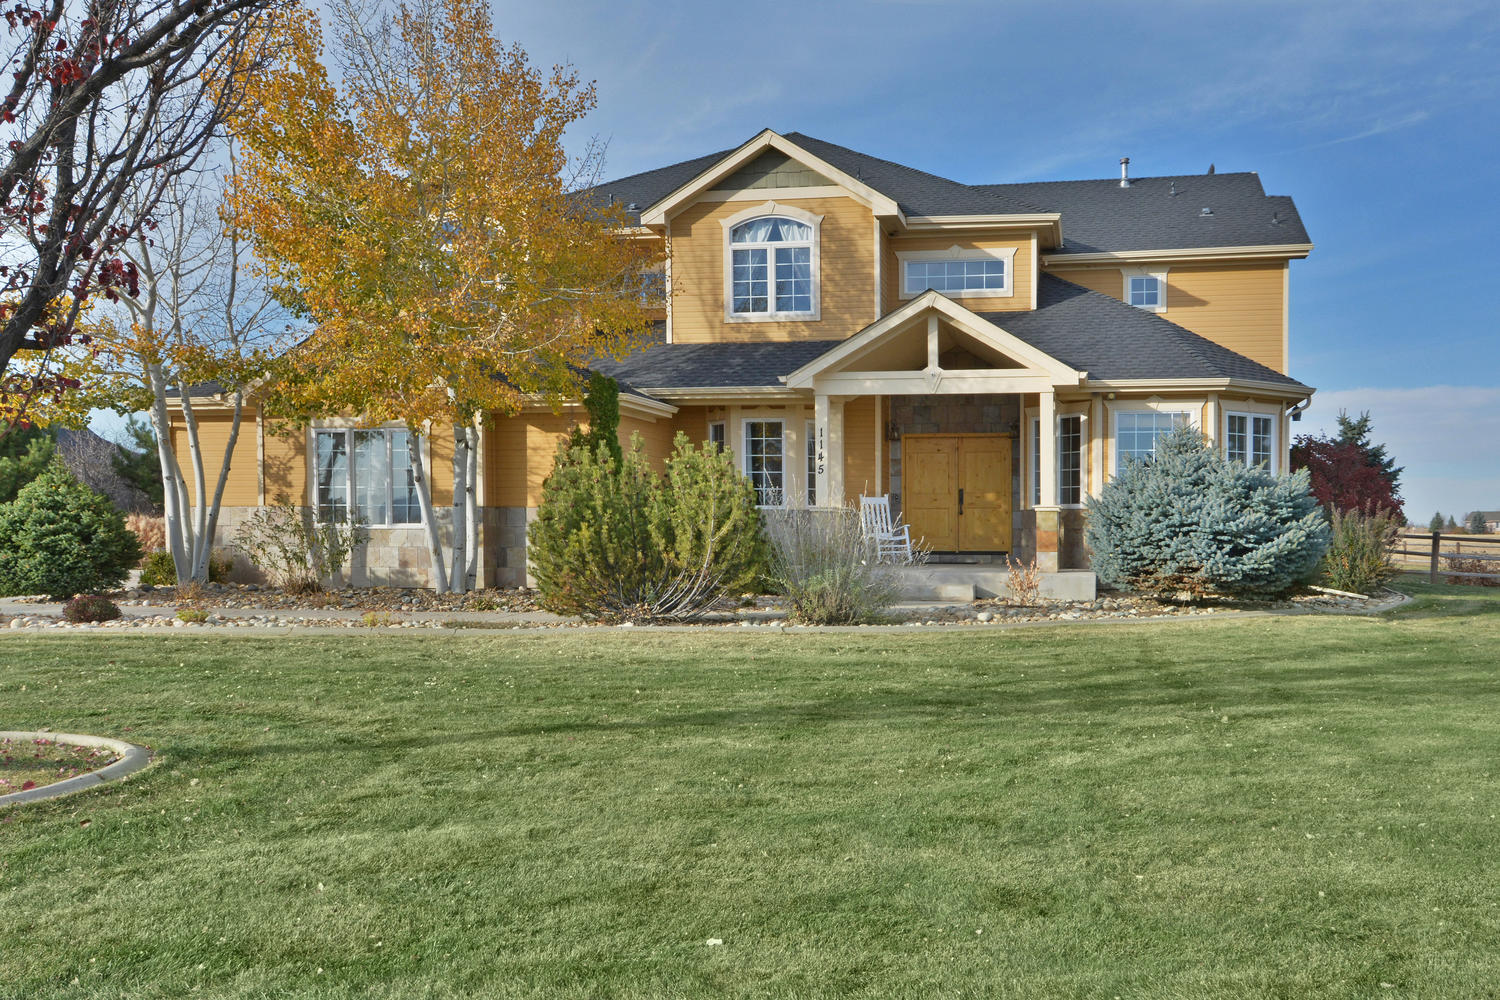 1145 Shelby Dr, Berthoud, CO 80513